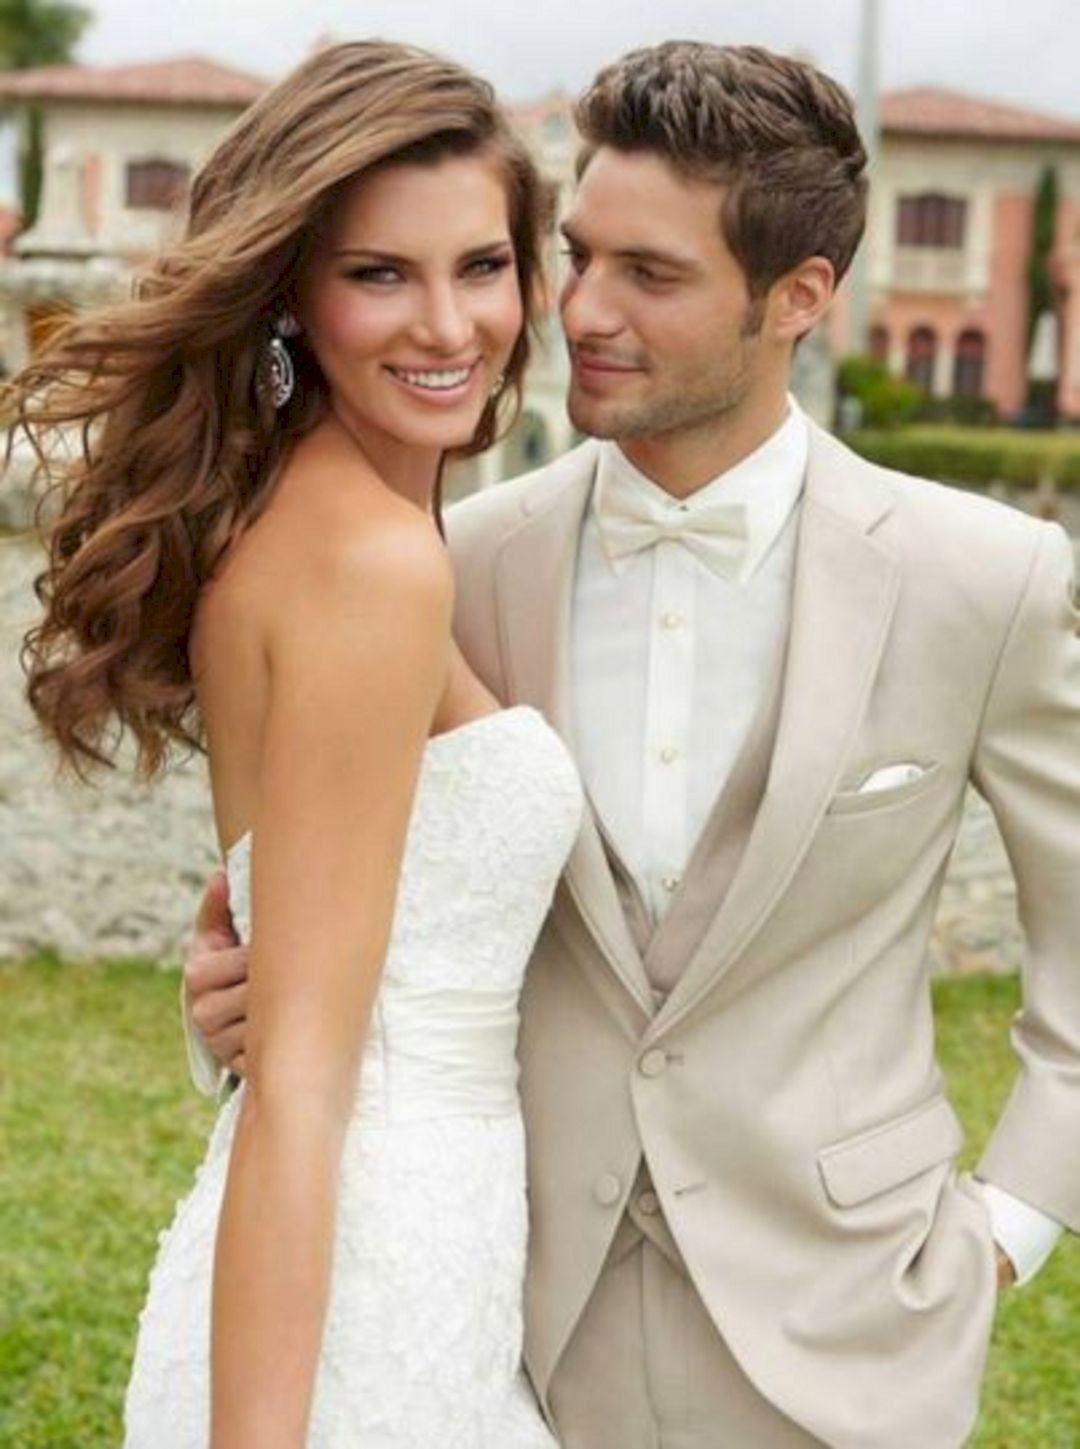 20+ Awesome Casual Wedding Groomsmen Attire That You Need To See For ...